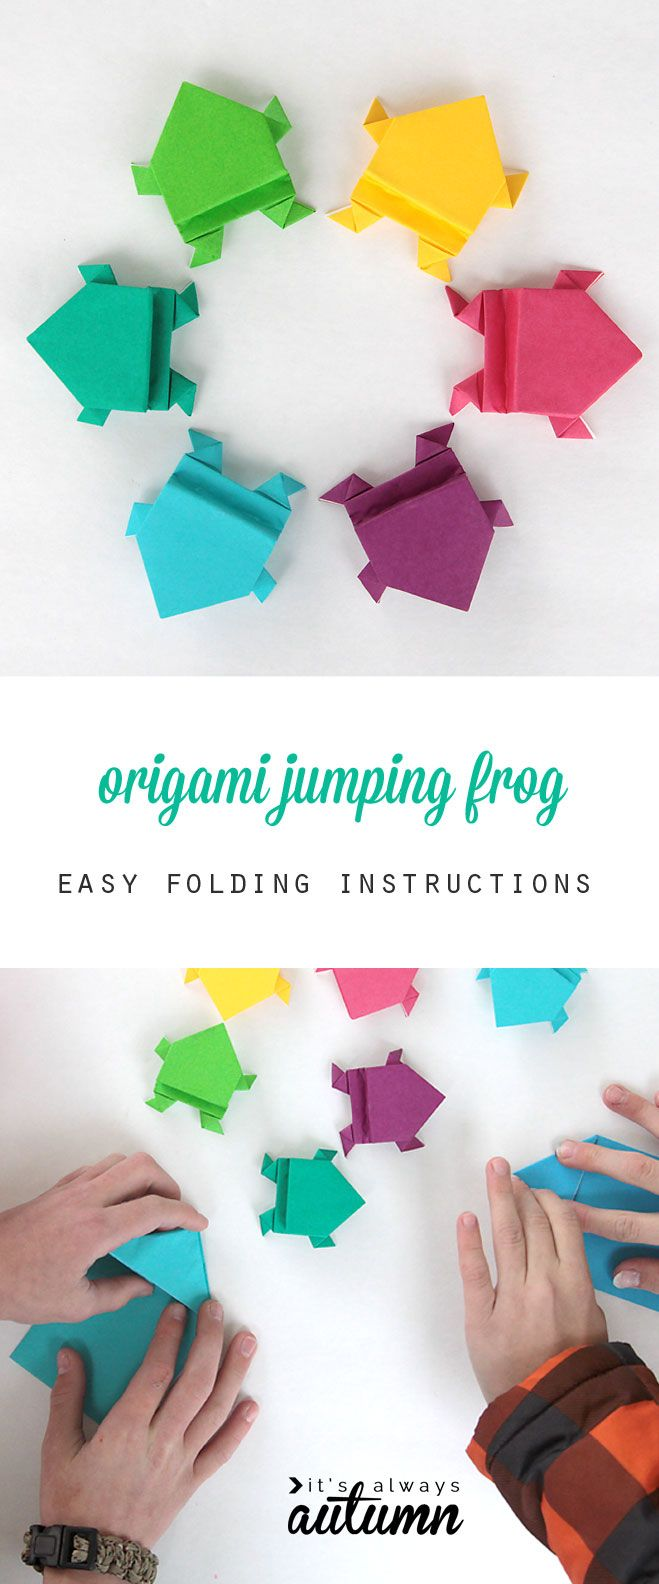 Origami jumping frogs easy folding instructions nice photos nice photo instructions show how to fold an origami jumping frog looks easy enough for jeuxipadfo Choice Image